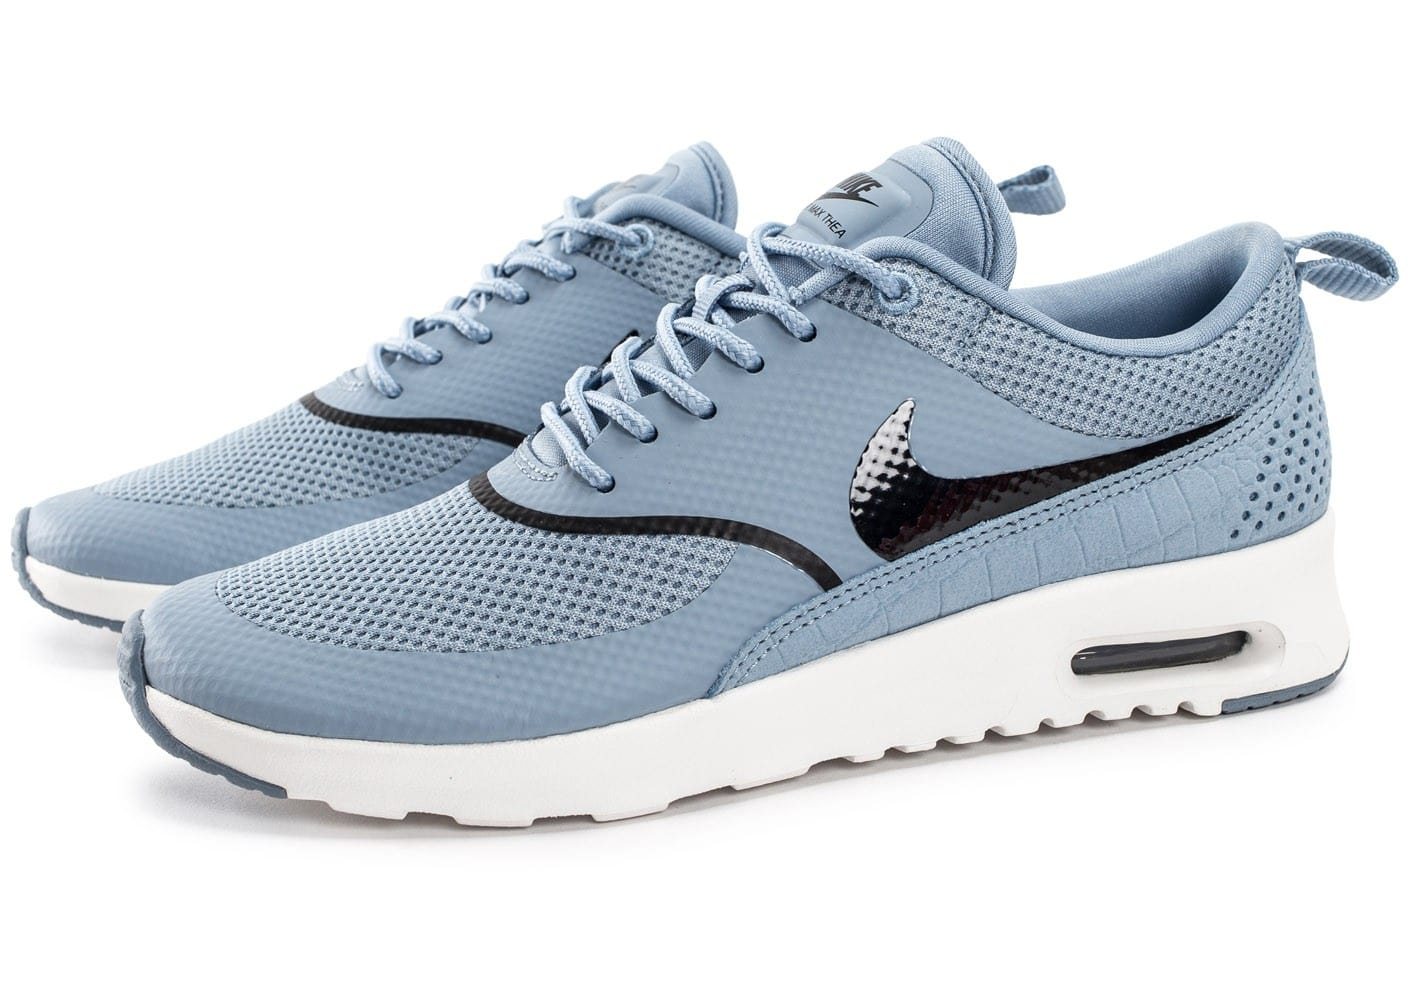 nike air max thea bleue chaussures black friday chausport. Black Bedroom Furniture Sets. Home Design Ideas